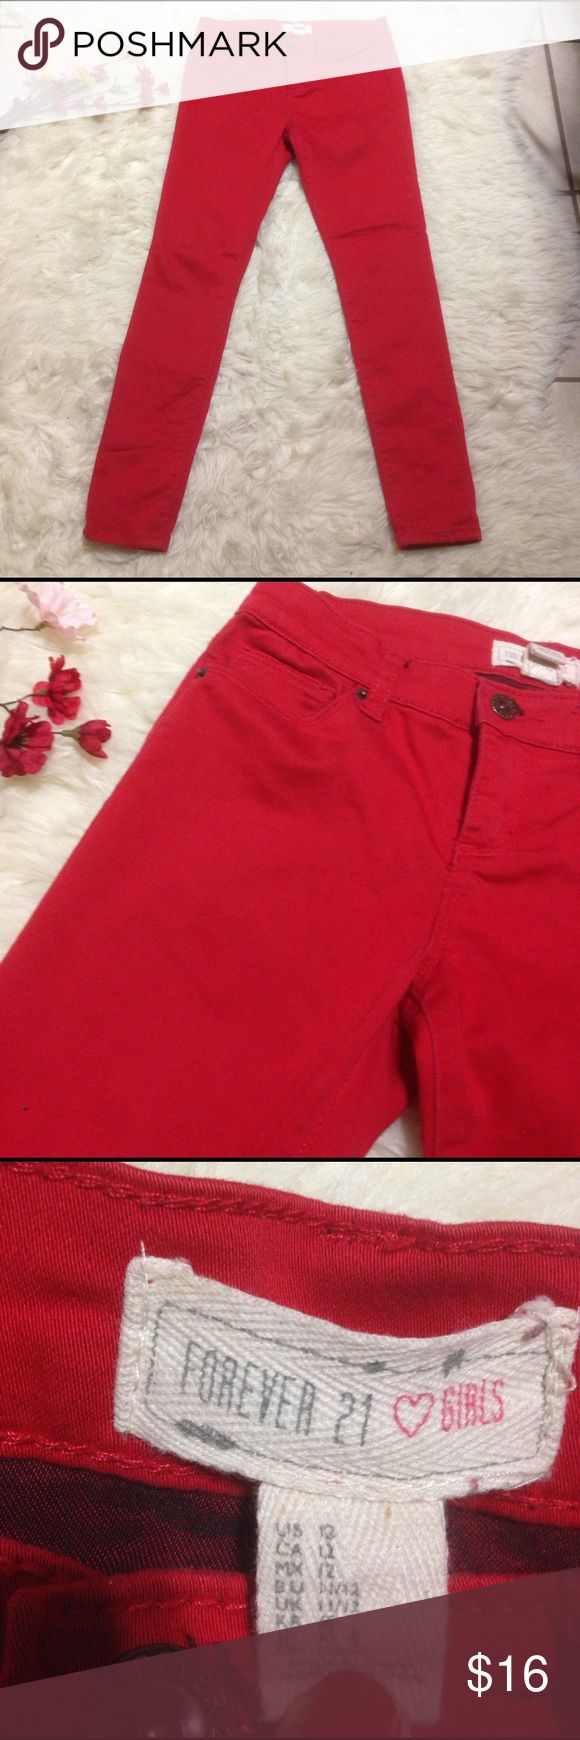 """Forever 21 Girls Red Skinny Pants Size 12 Soft and comfy. Stretch fabric. 4 pockets and can be belted. Beautiful vibrant red color. Amazing condition. Length 33"""" - Inseam 24"""" - Waist across laying flat 13.5"""" Forever 21 Pants Skinny"""